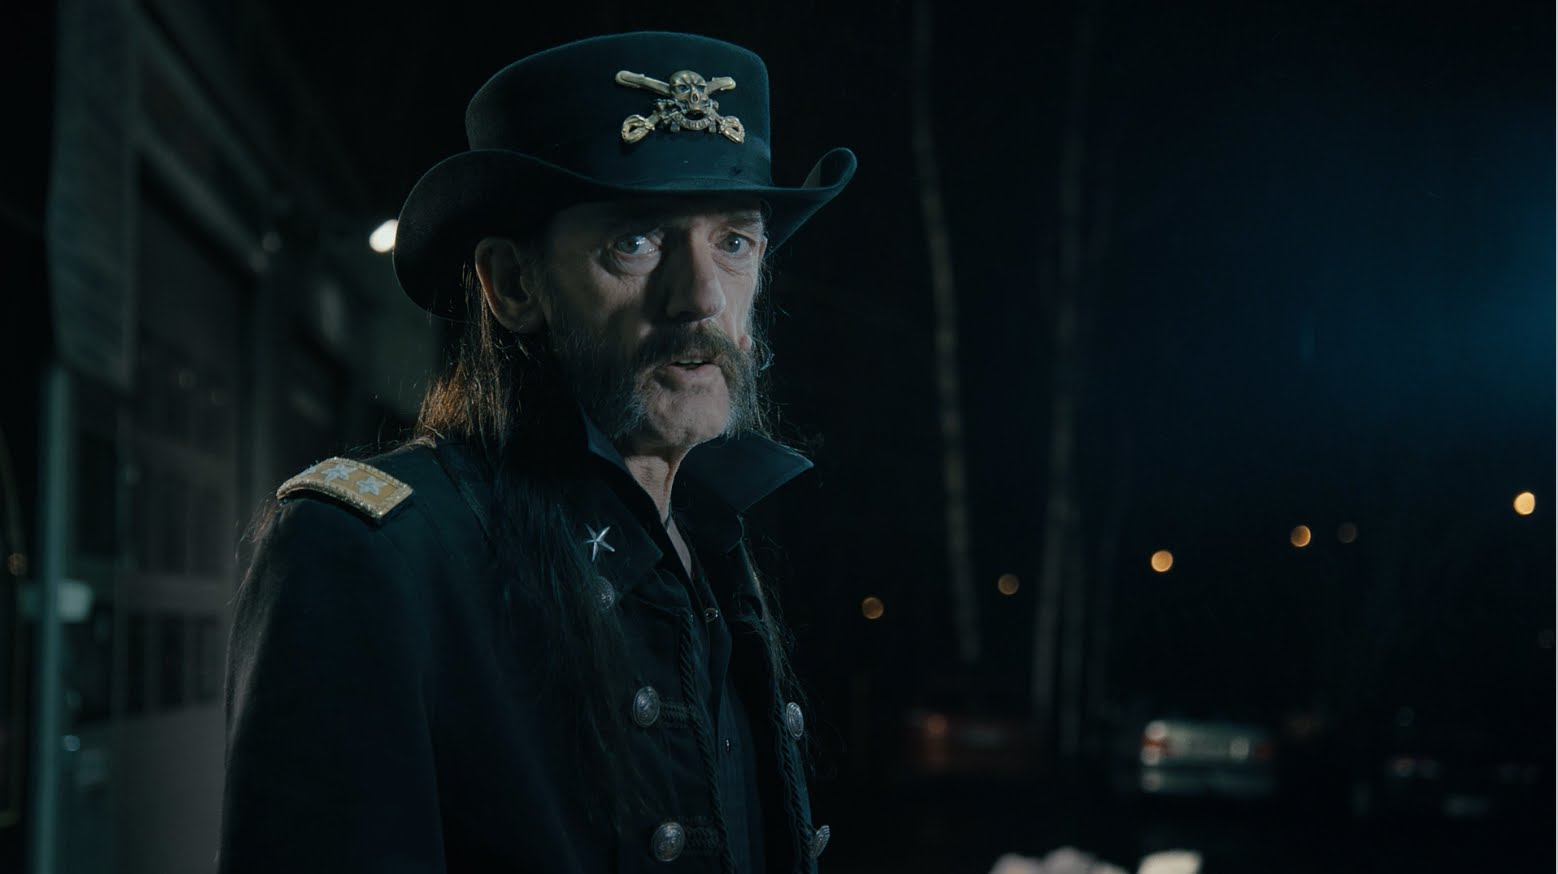 b8eb706d21fb2 The late Lemmy Kilmister of Motorhead immortalized in a milk ad from  Finland   Boing Boing